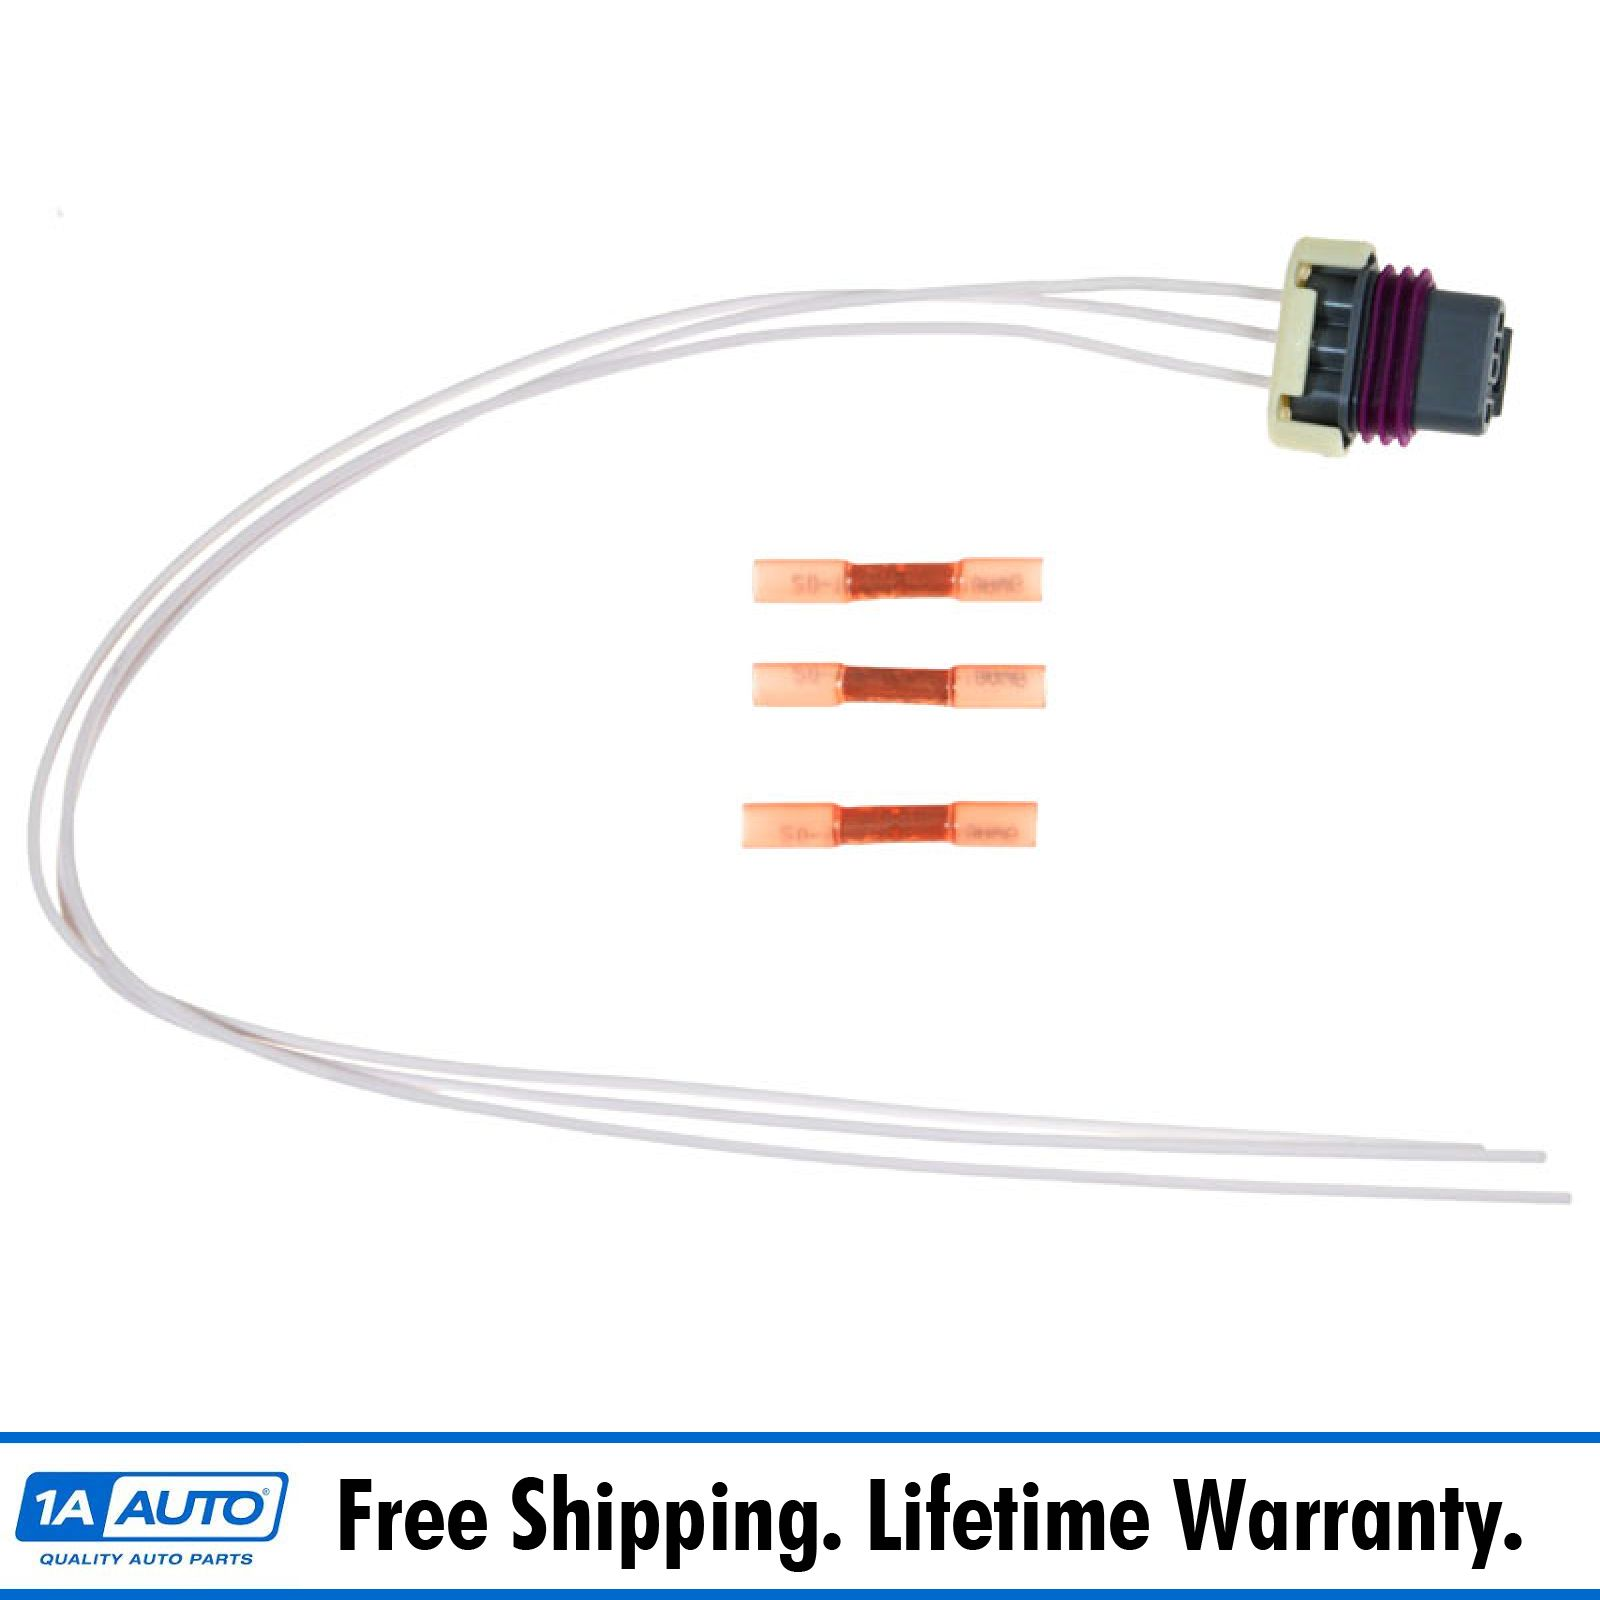 map manifold pressure sensor pigtail harness wiring connector for chevy gmc gm ebay details about map manifold pressure sensor pigtail harness wiring connector for chevy gmc gm